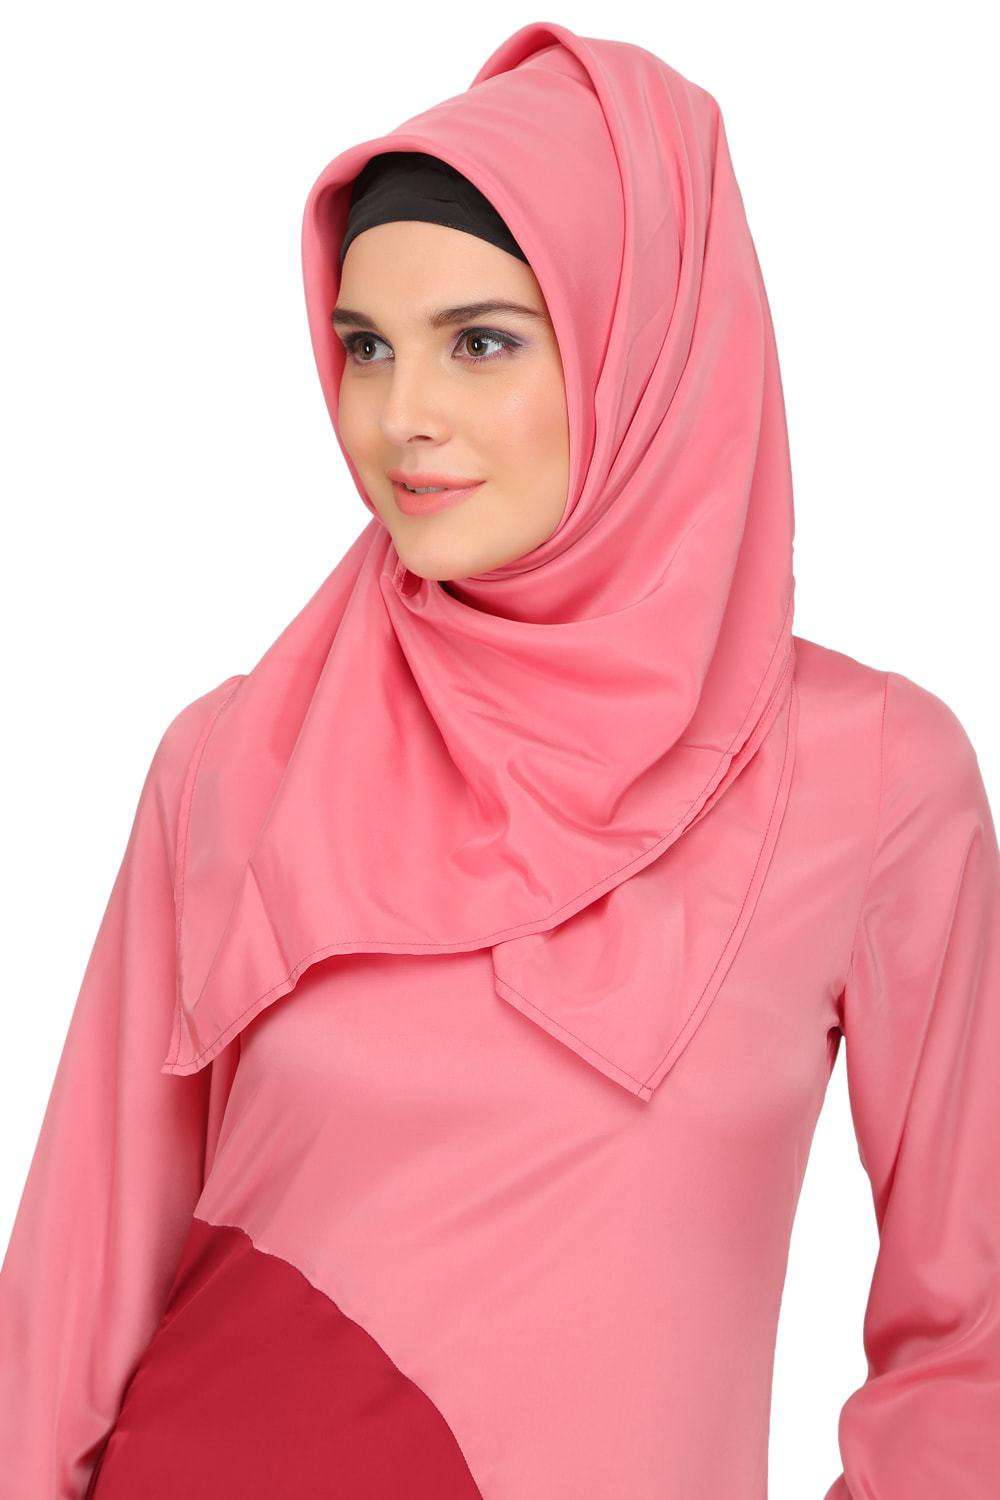 Minal Coral and Rose Pink Crepe Short Abaya Hijab